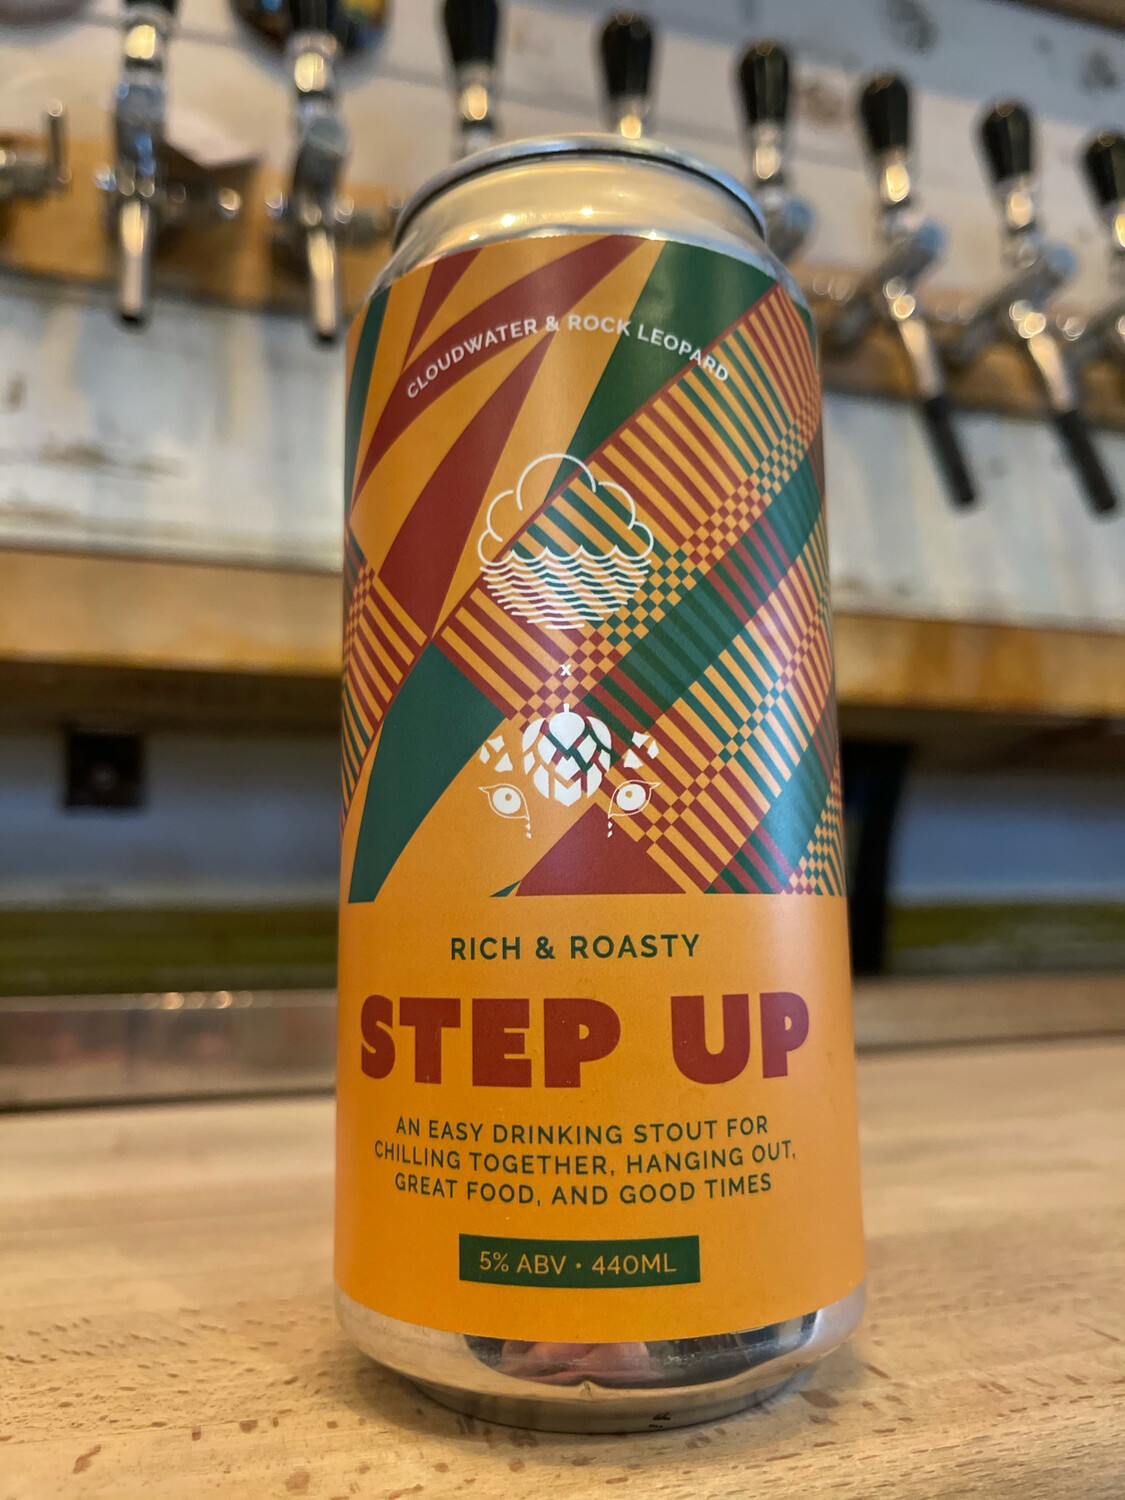 CLOUDWATER x ROCK LEOPARD- STEP UP